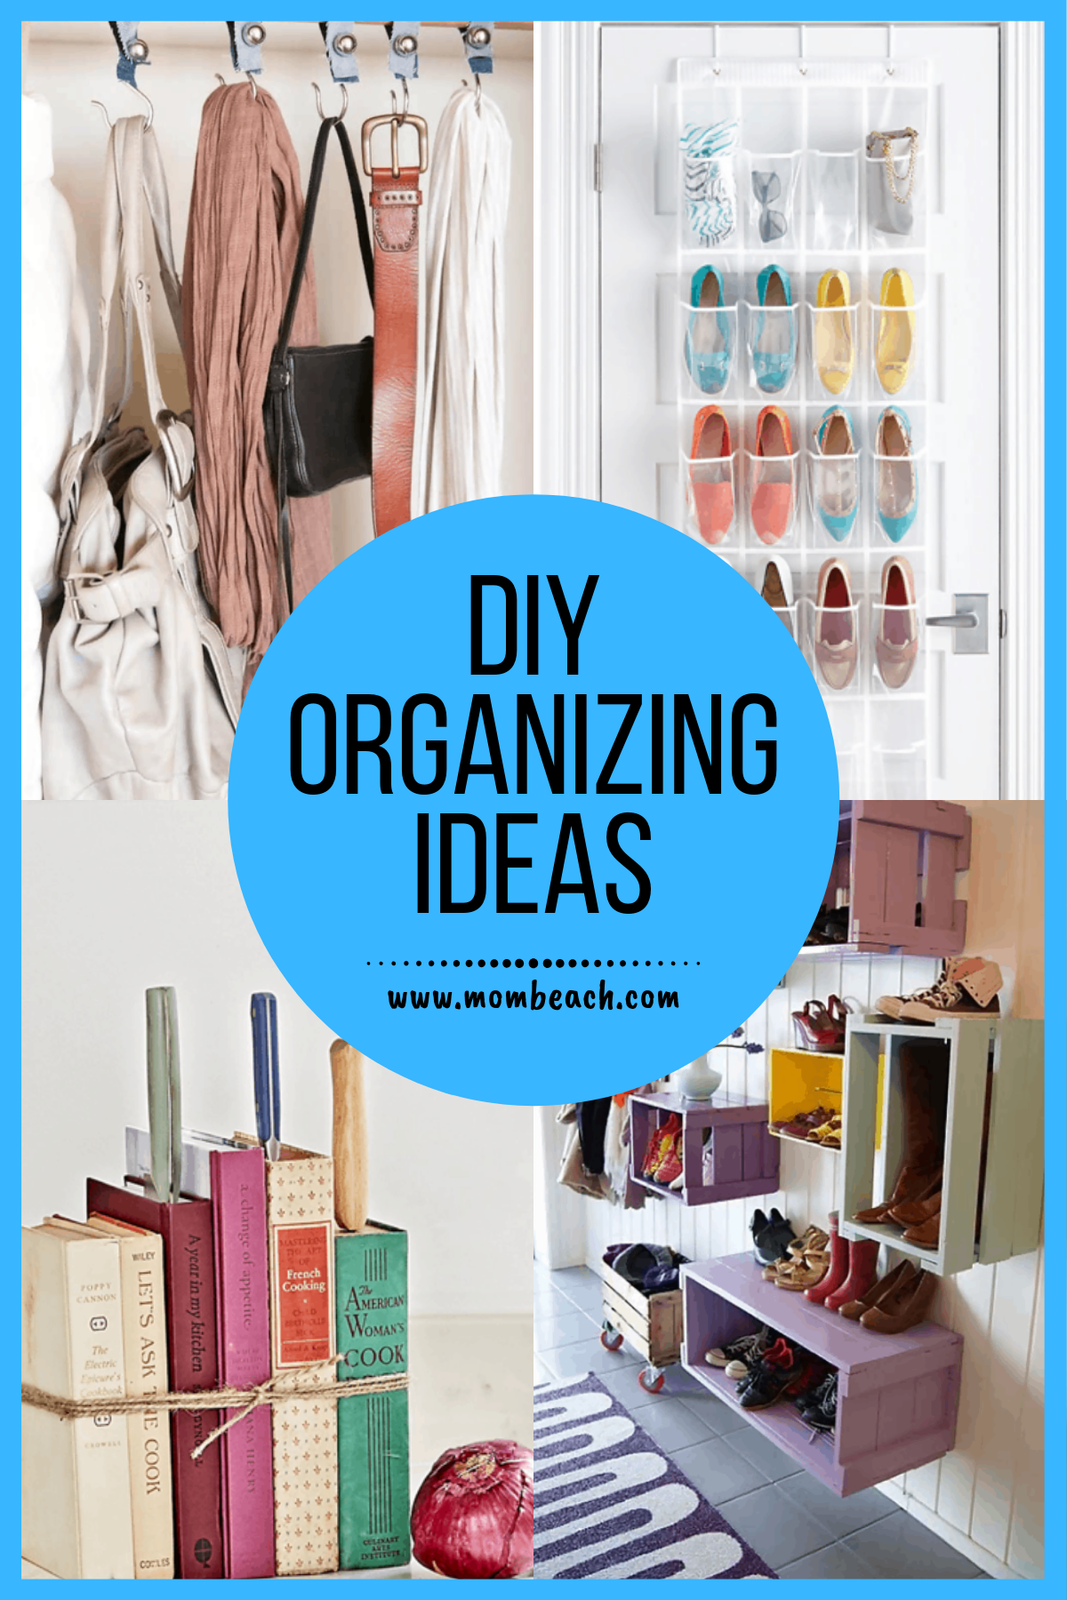 OMG these organization ideas that you can DIY rule! Save money by DIY instead of spend hundreds at the Container Store. There are so many dollar store organization ideas that you will be shook! There are DIY organization ideas for the bedroom, for small spaces, for teens, bathrooms, the kitchen and the closet. There are even hacks for the apartment too. #diyorganization #diyorganizationideas #diyorganizationhacks #diyorganizationforsmallspaces #diyorganizationdollarstore